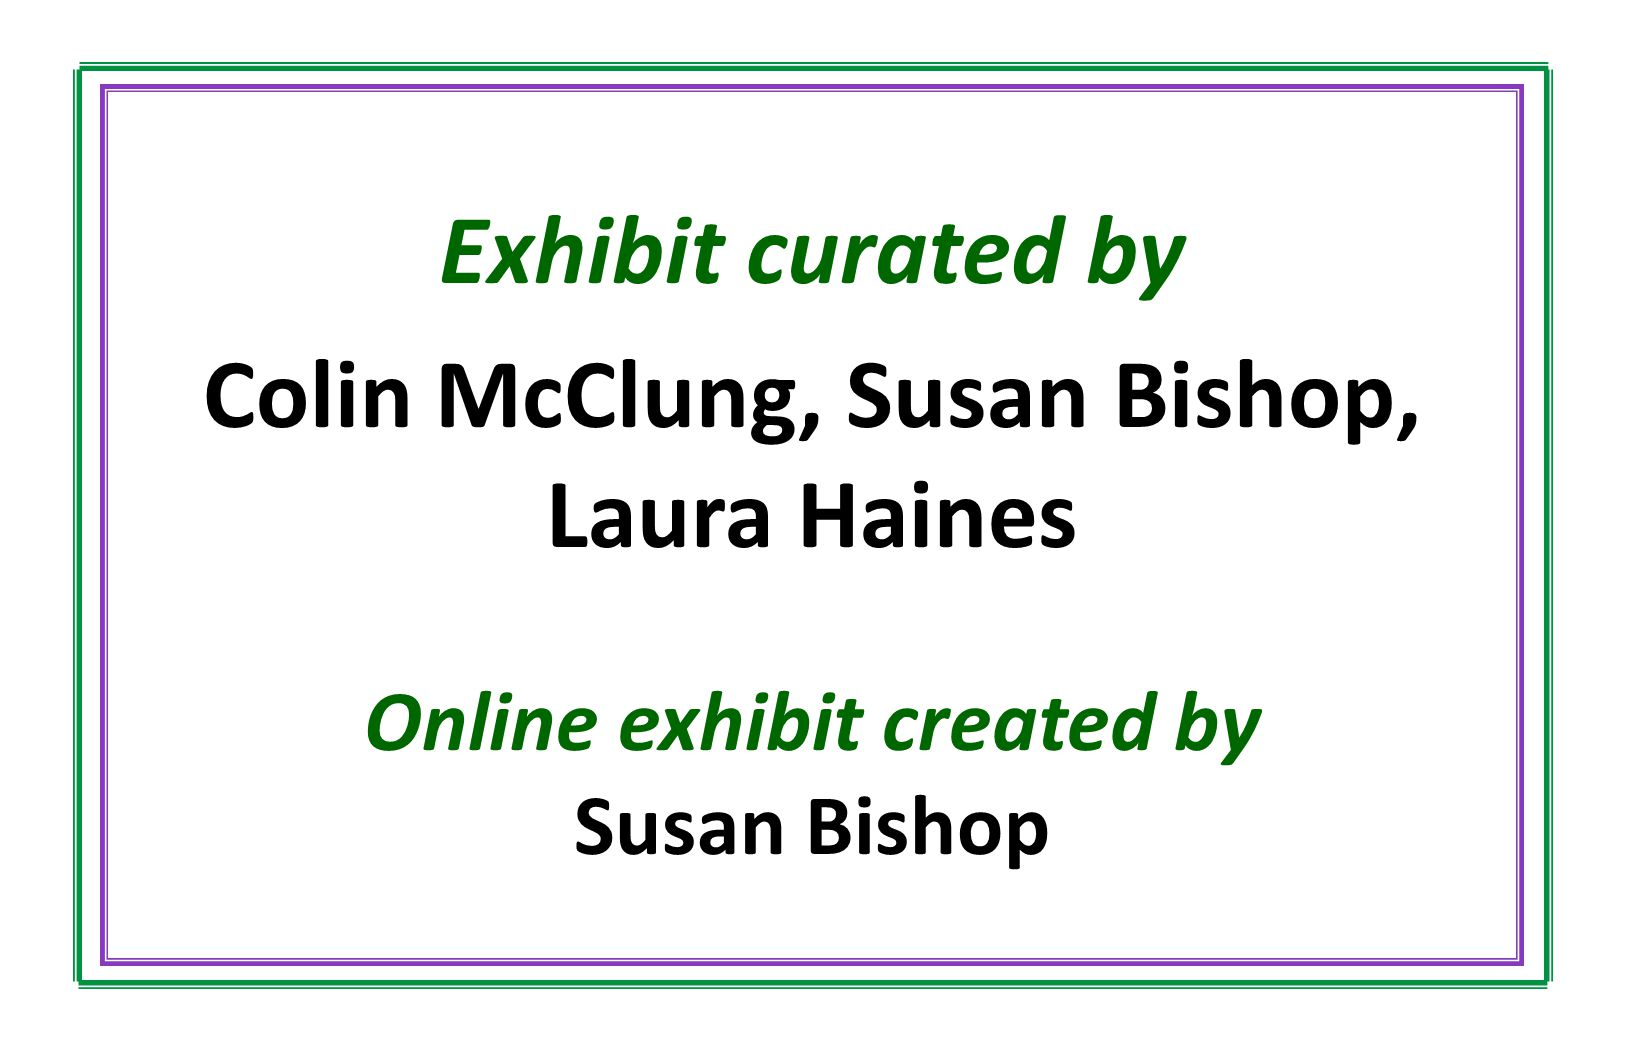 Exhibit curated by Colin McClung, Susan Bishop, Laura Haines Online exhibit created by Susan Bishop